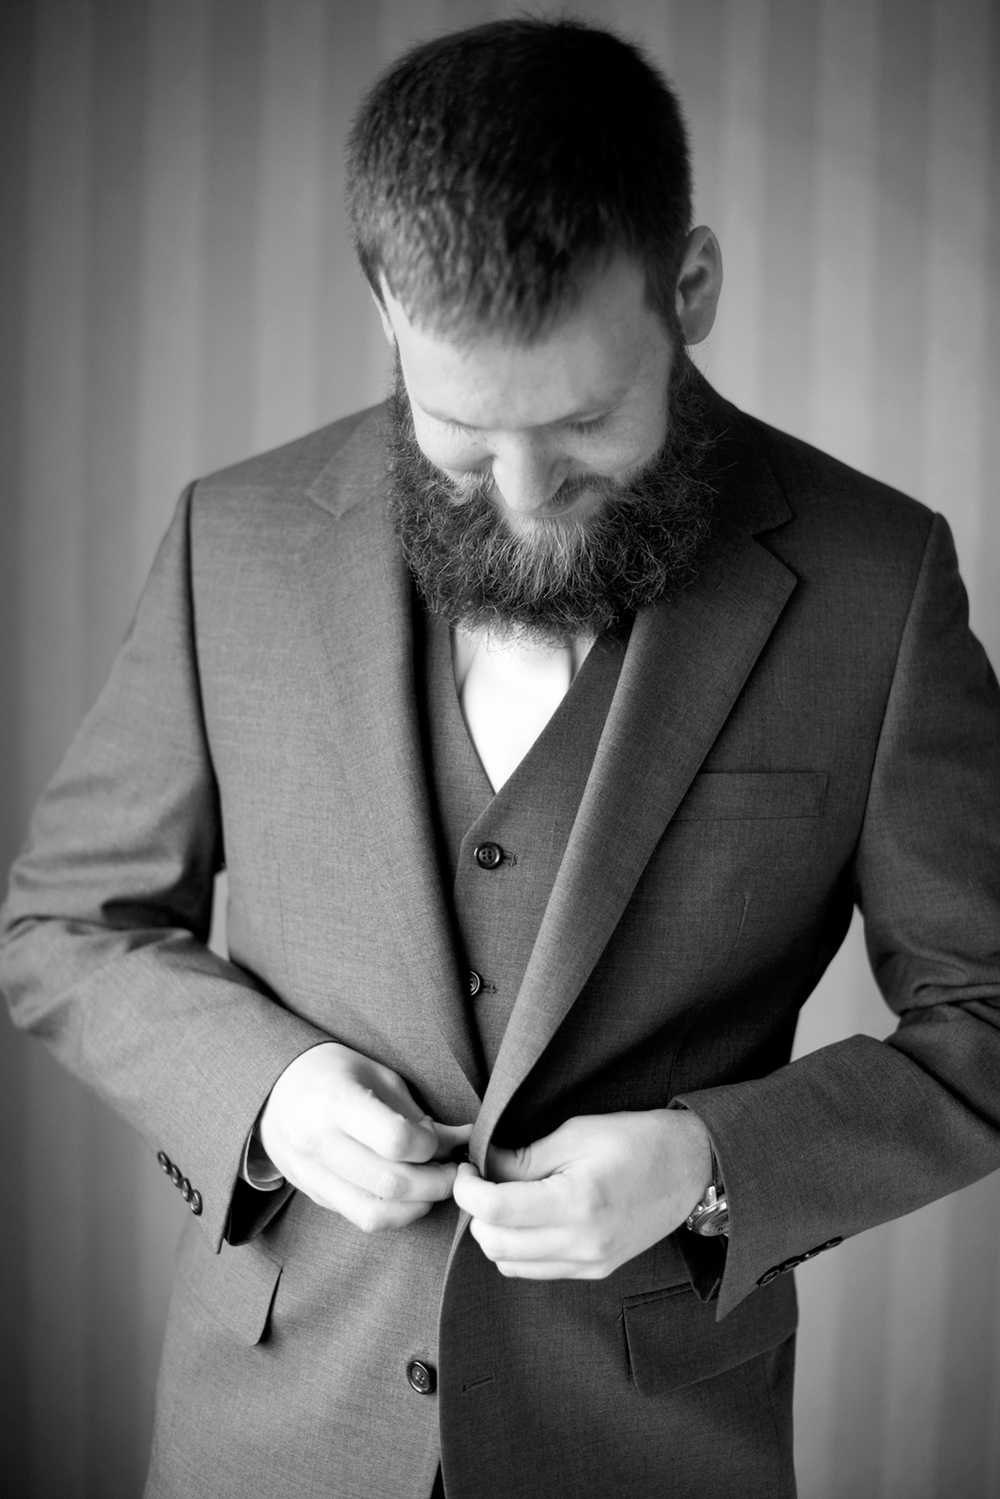 Groom getting ready picture (black and white)